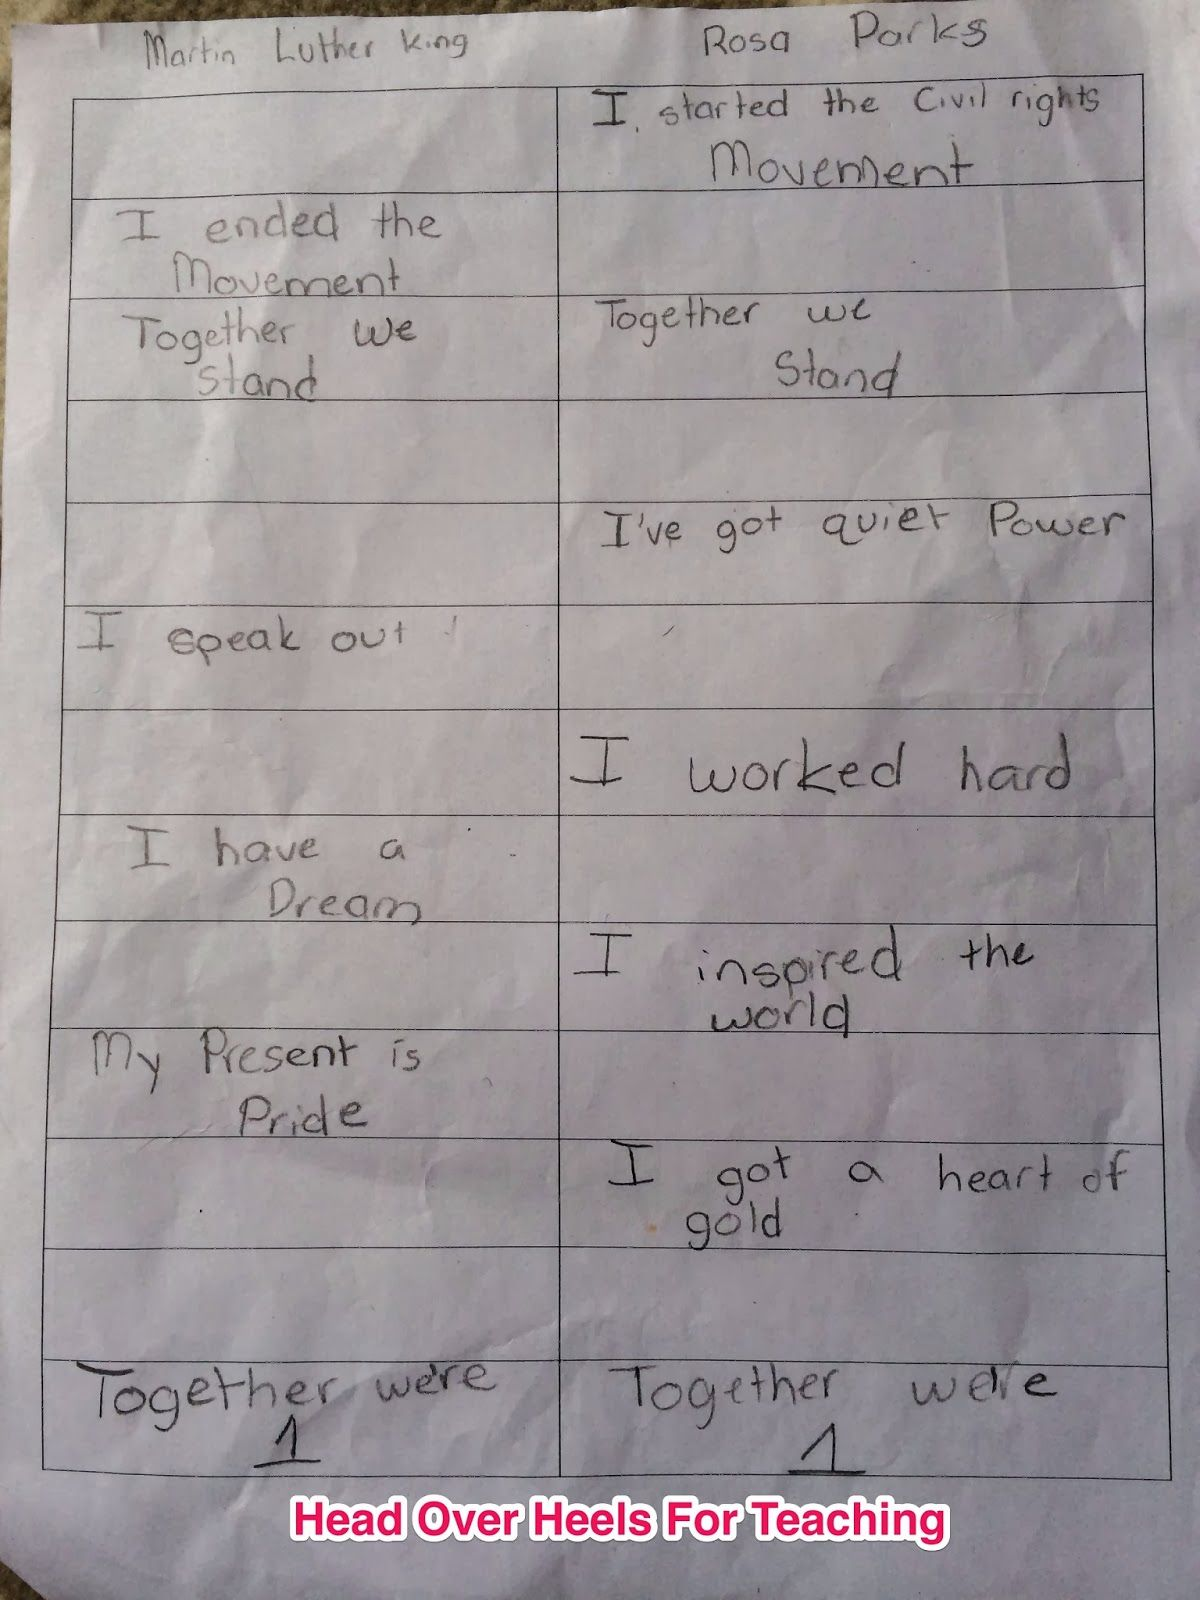 spark student motivation poems for two voices students wrote spark student motivation poems for two voices students wrote poems about rosa parks and